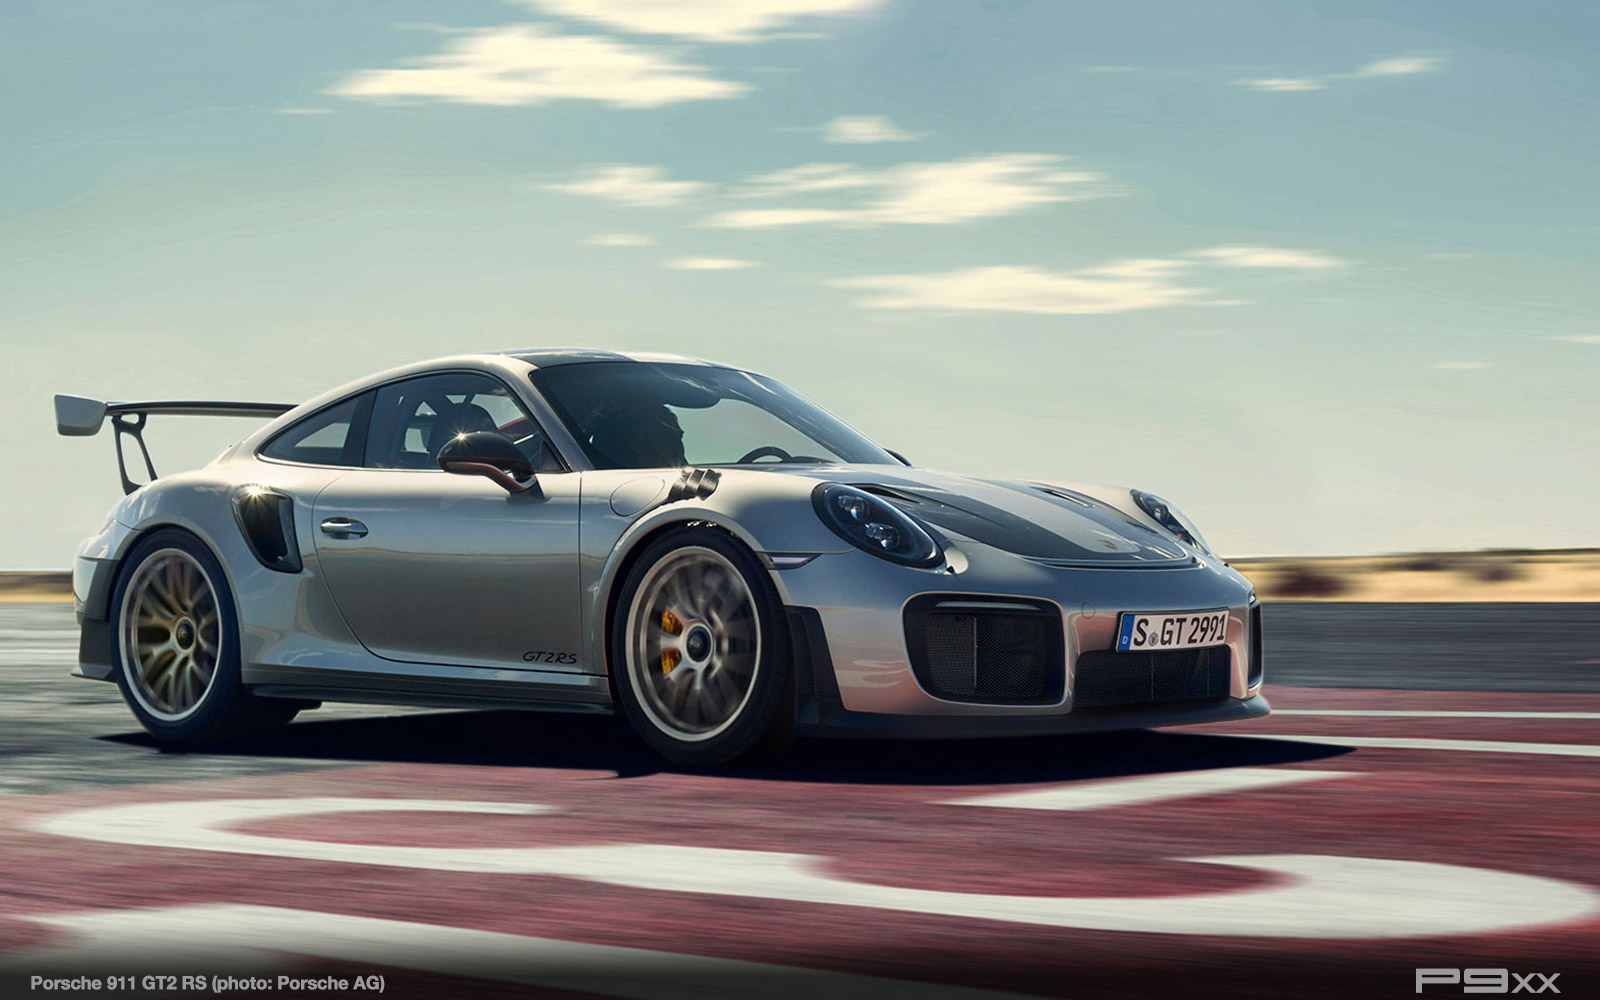 Photo Gallery Porsche 911 Gt2 Rs Type 991 2 P9xx HD Style Wallpapers Download free beautiful images and photos HD [prarshipsa.tk]